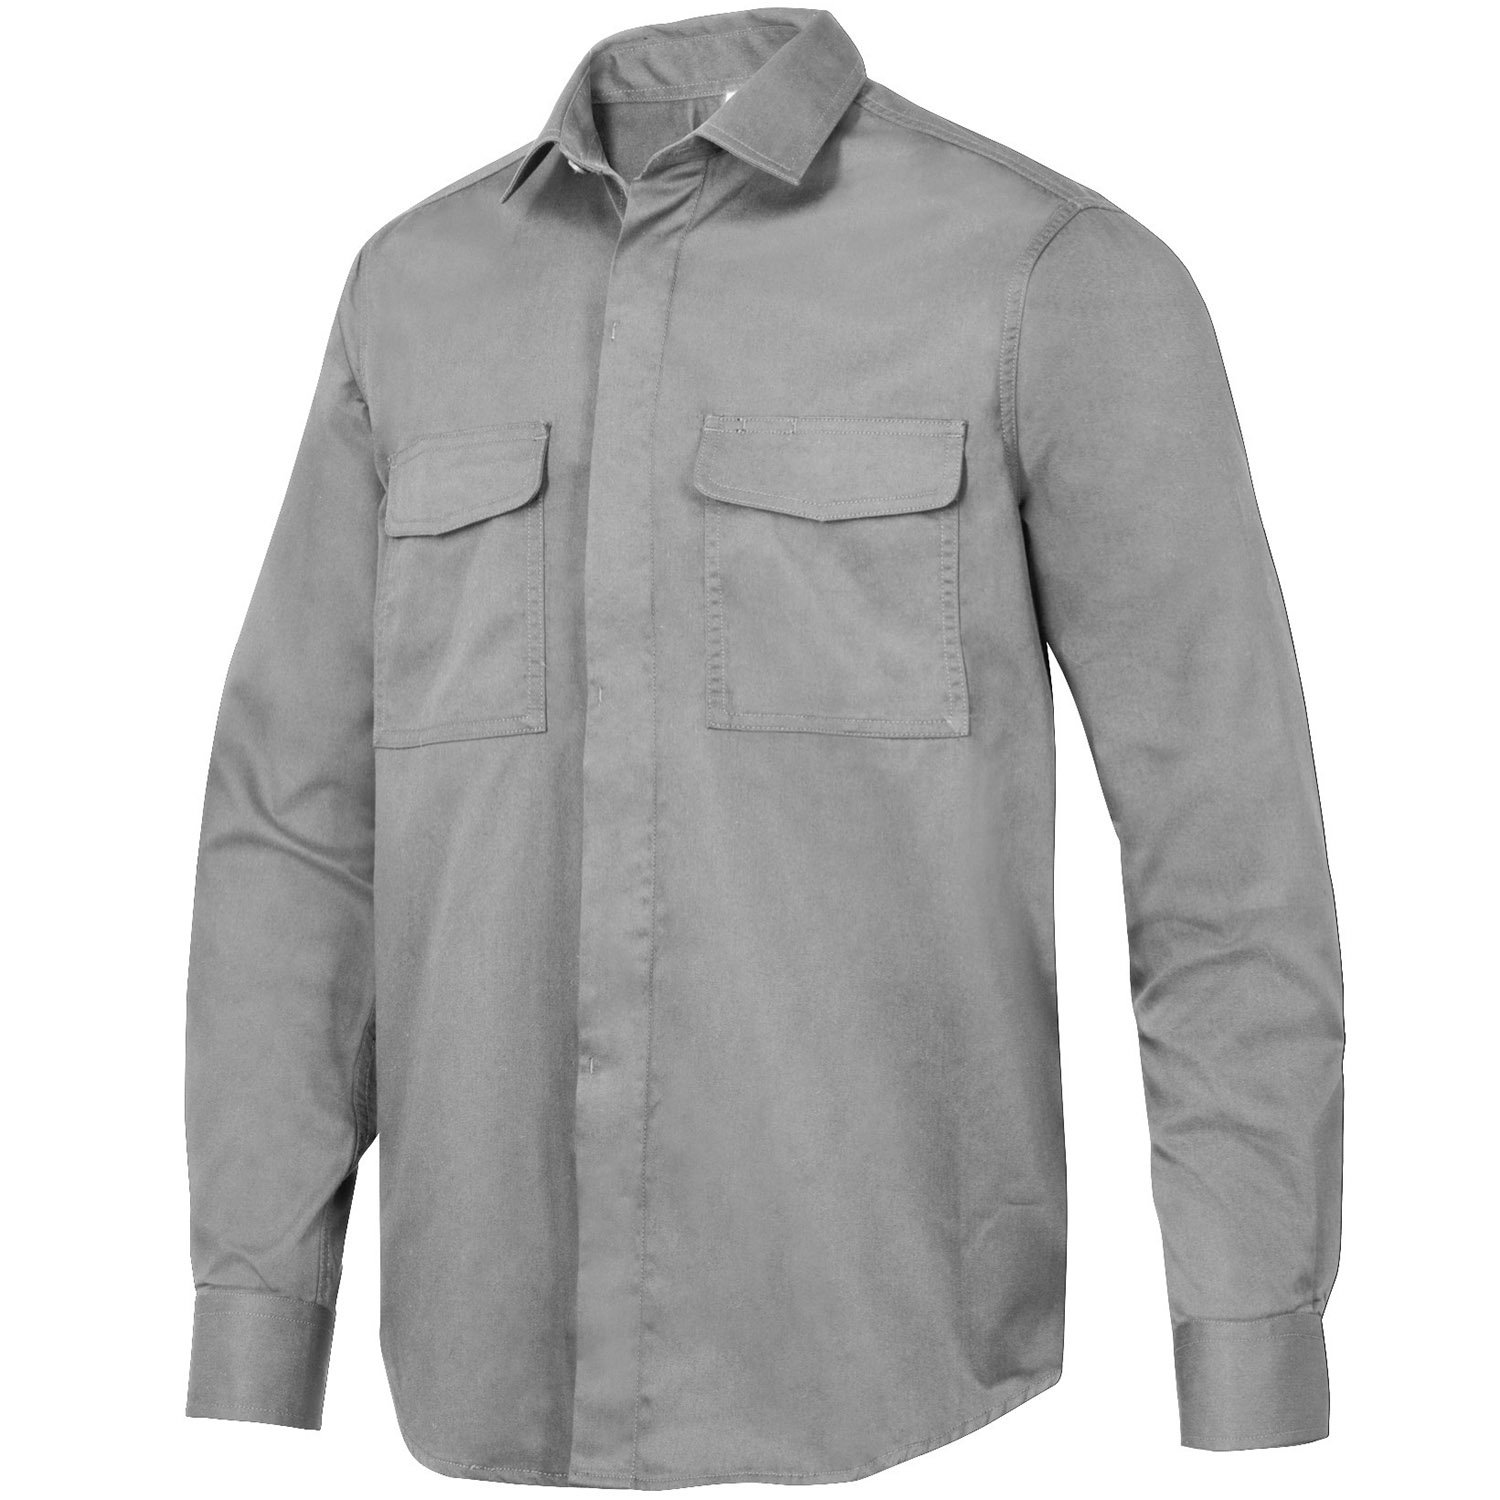 Snickers 85101800005 Size Medium Service Long Sleeve Shirt - Grey